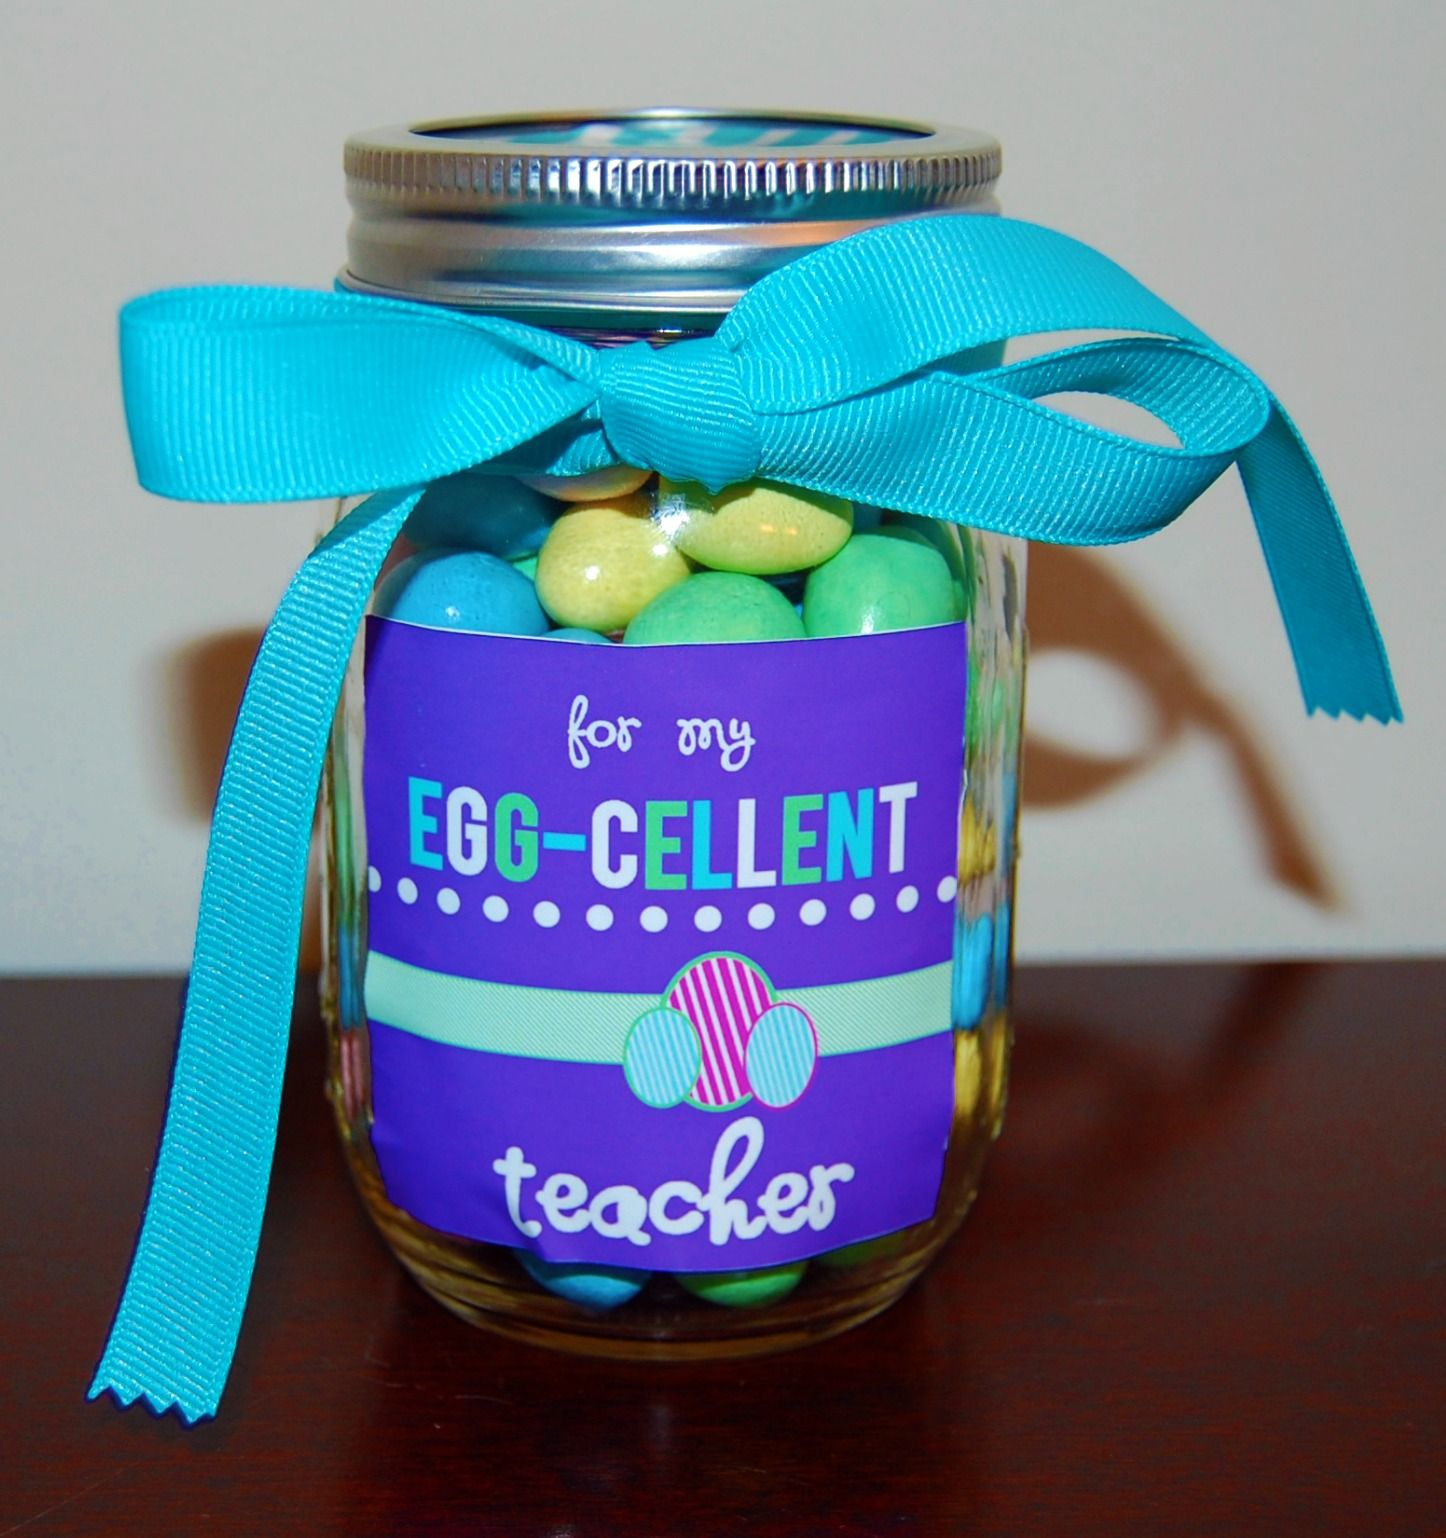 Whos ready for a super cute teacher gift this girl since this is free easter teacher gift printable heres an adorable teacher gift idea for easter fill a jar with egg shaped candies and put on this for my egg cellent negle Image collections